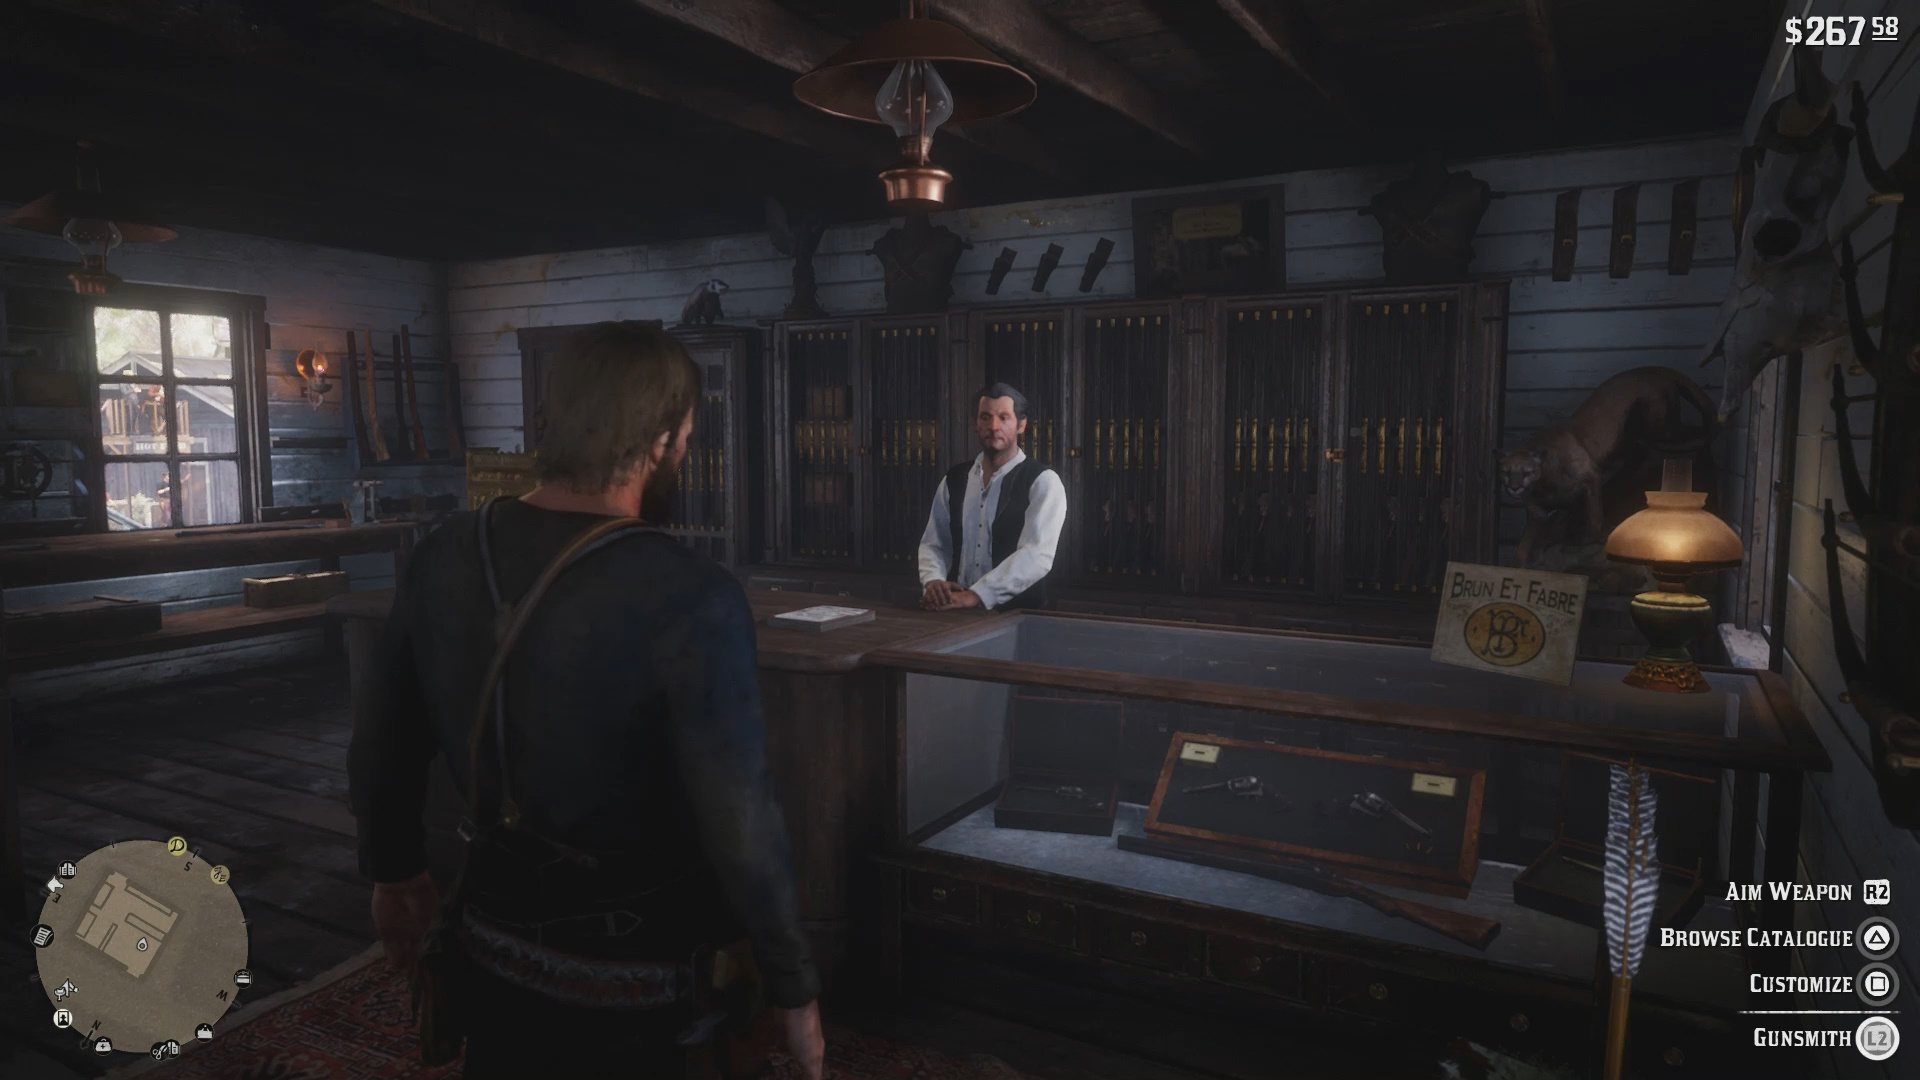 How to Customize your Weapons in Red Dead Redemption 2